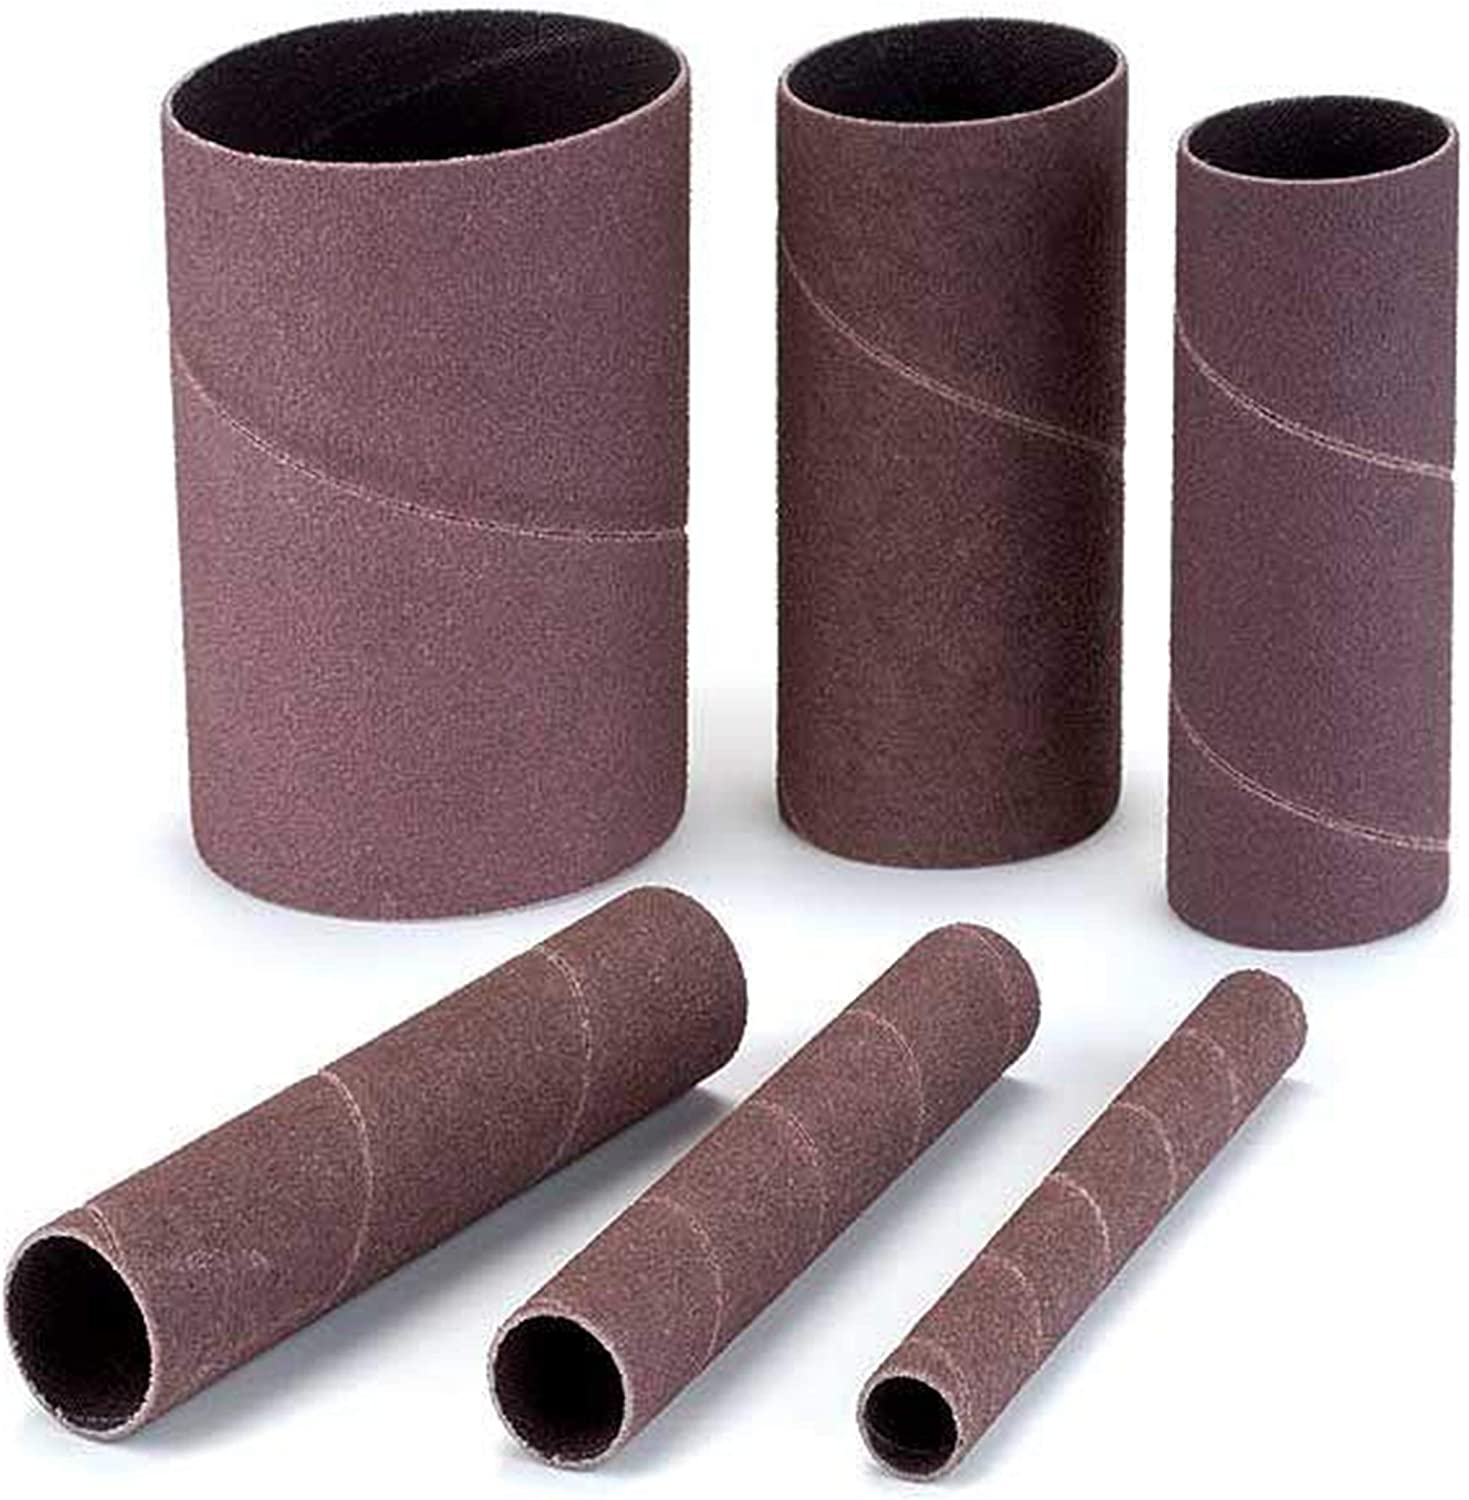 80 grit x 4.5 in. Sanding Sleeve Assortment 8100-bbOg0L